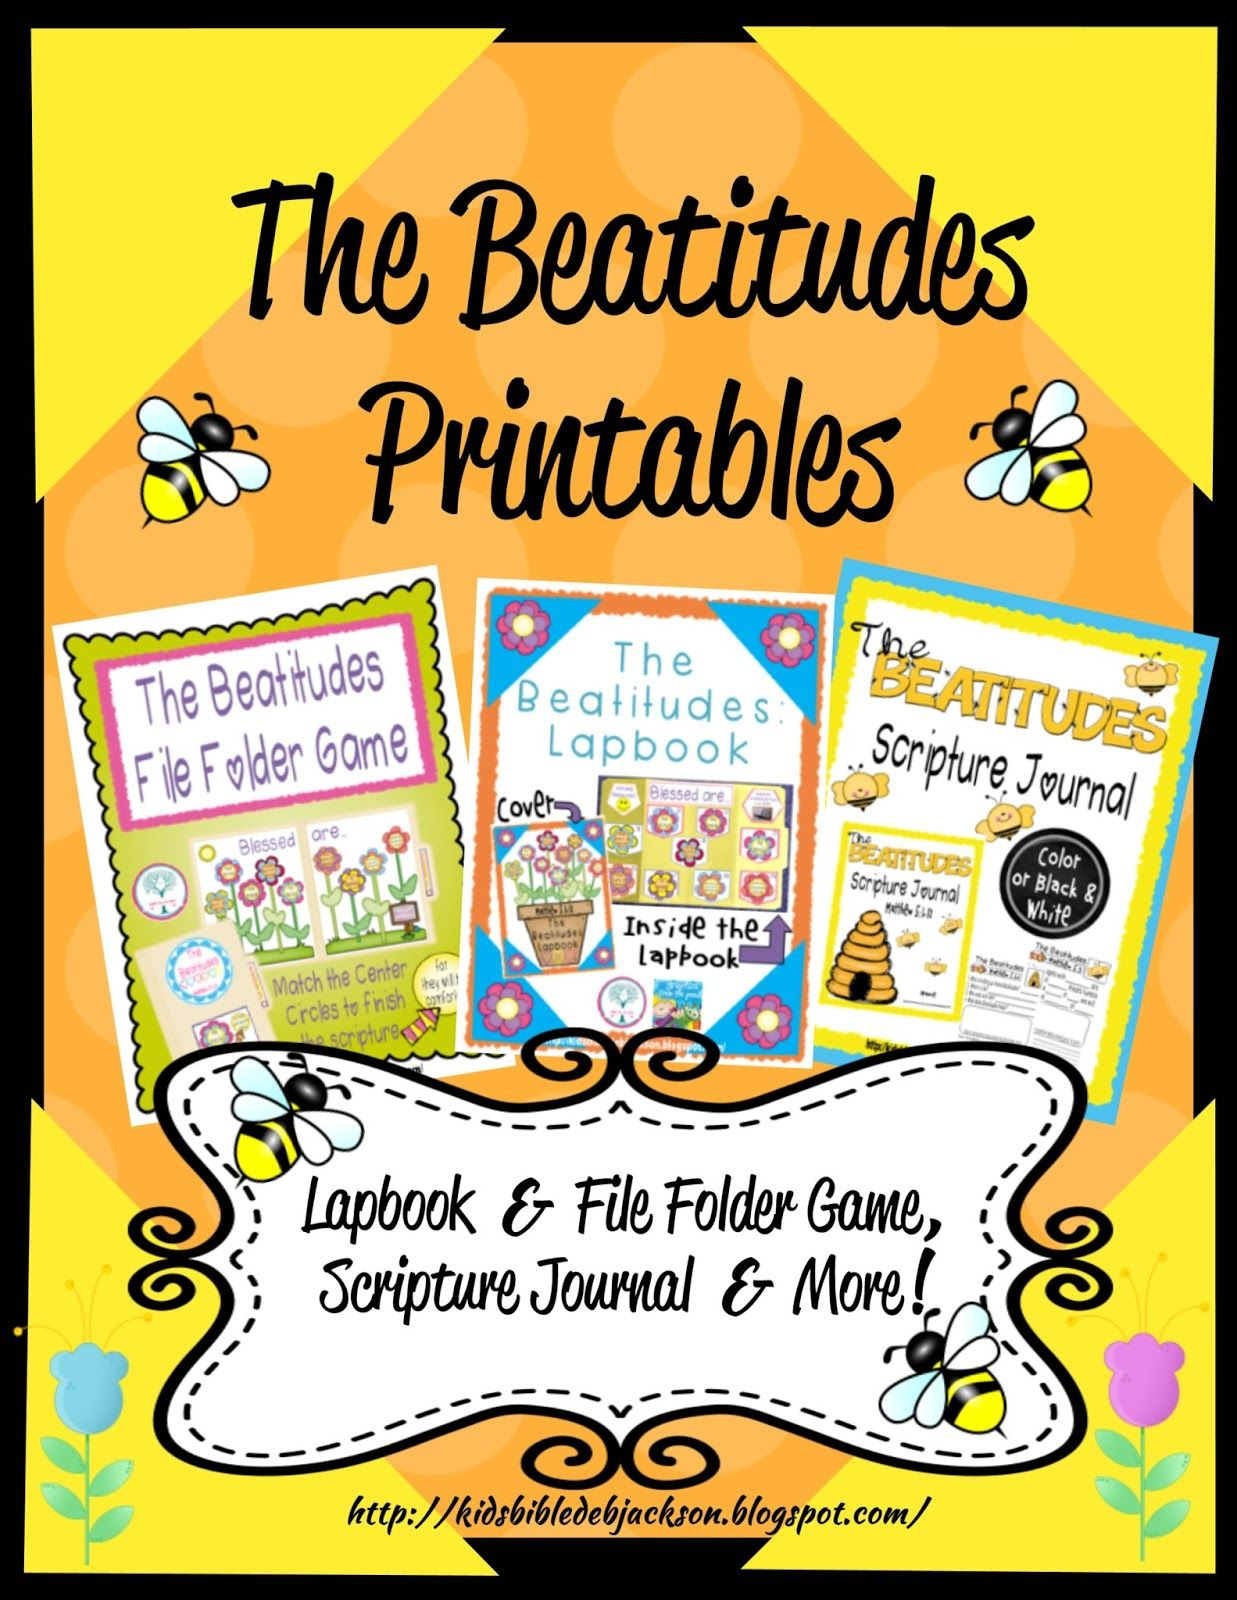 the beatitudes printables more not shown bible jesus